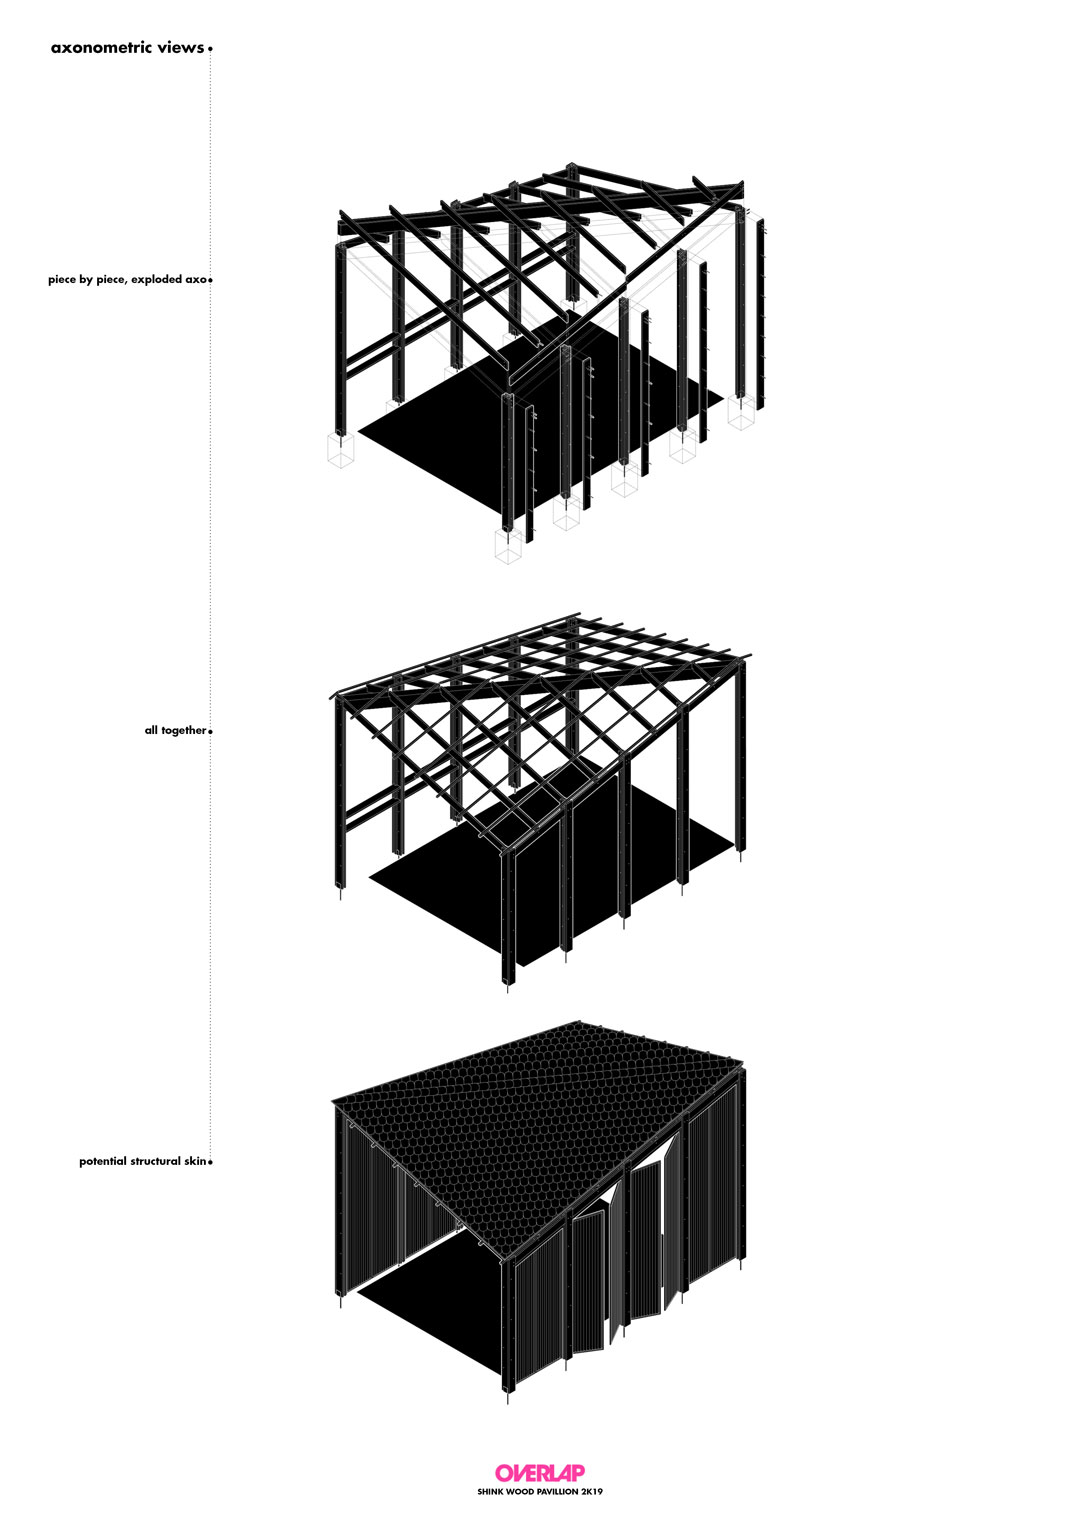 The process of building the wood pavilion explained through illustration. An exploded axonometric drawing showing how pieces come together, then the joined elements, and the final result illustrated.